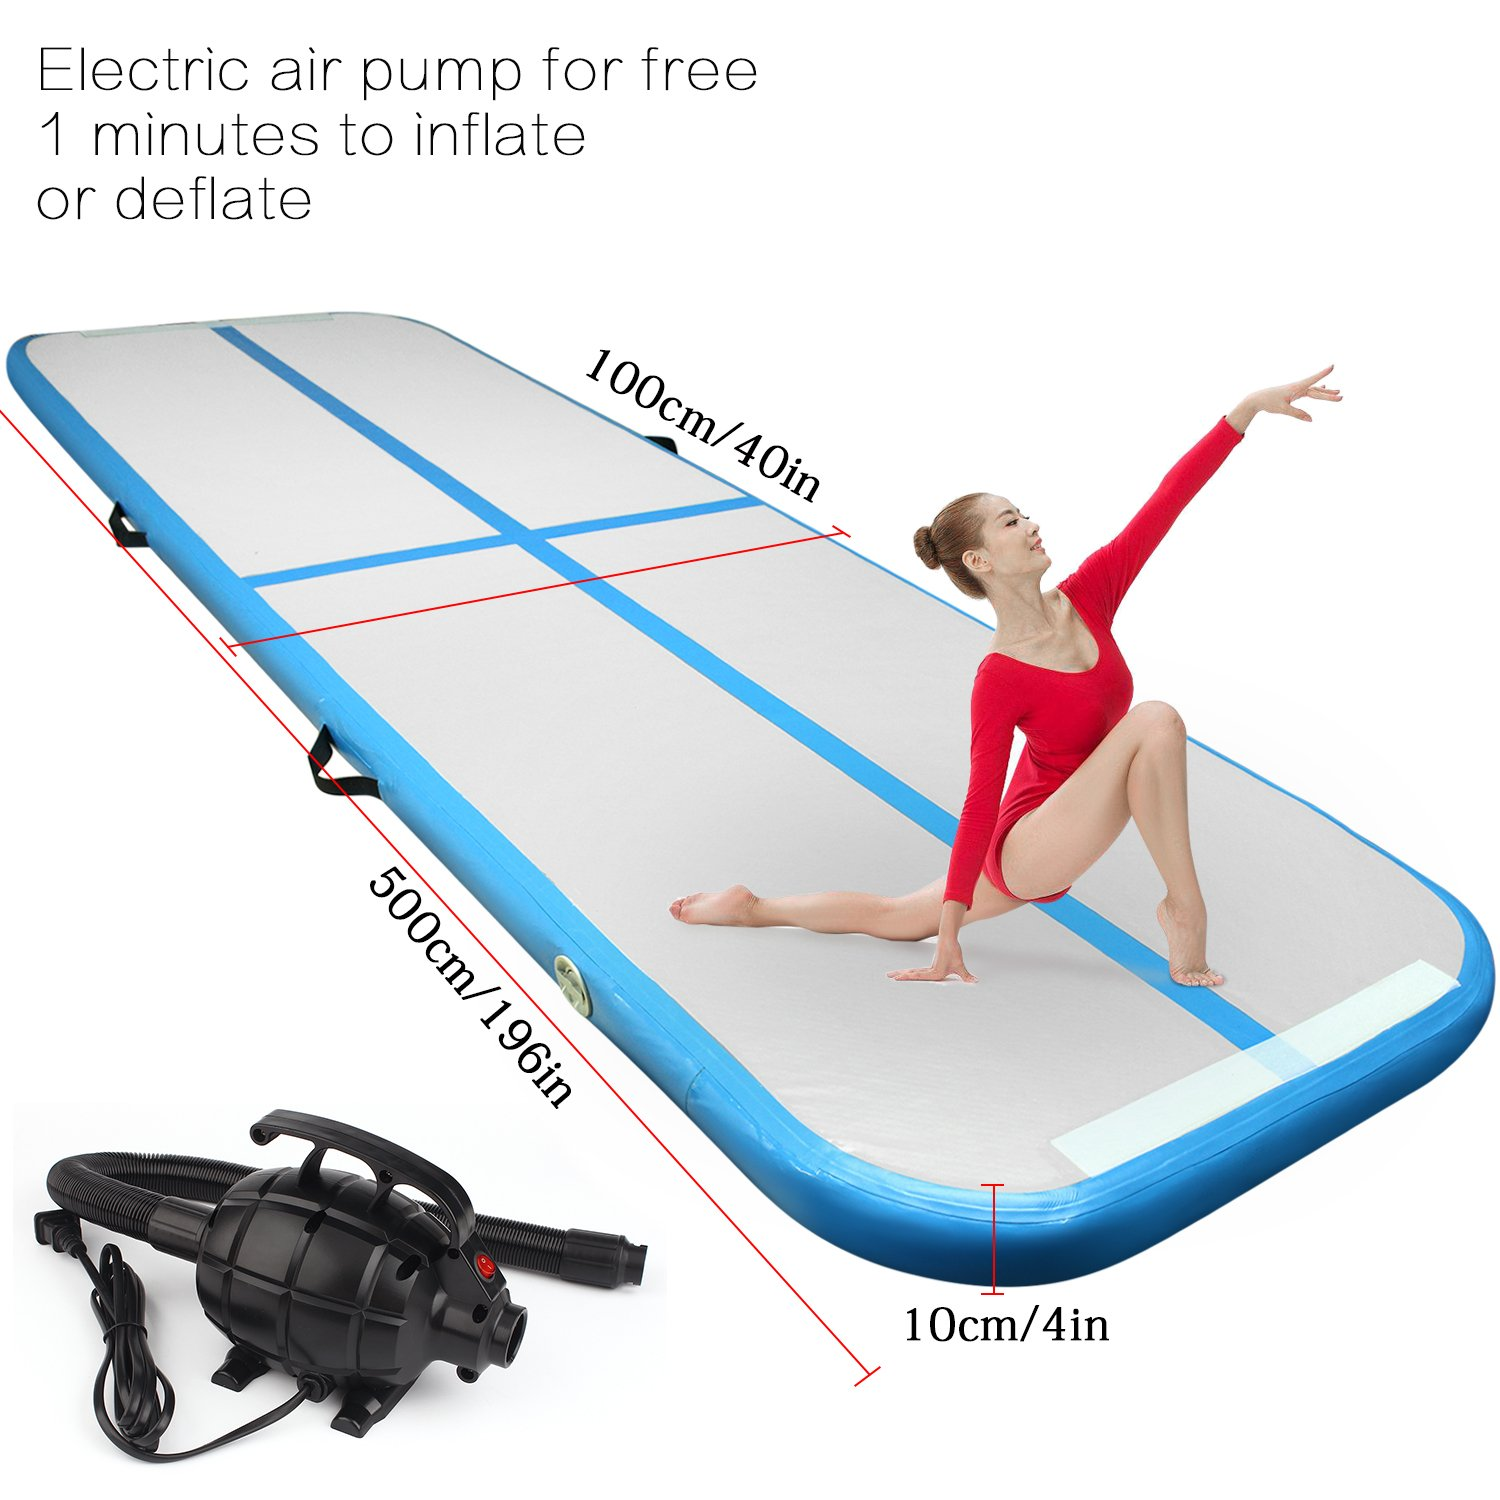 FBSPORT 16.4ft air Track Tumbling mat Inflatable Gymnastics airtrack with Electric Air Pump for Practice Gymnastics, Tumbling,Parkour, Home Floor